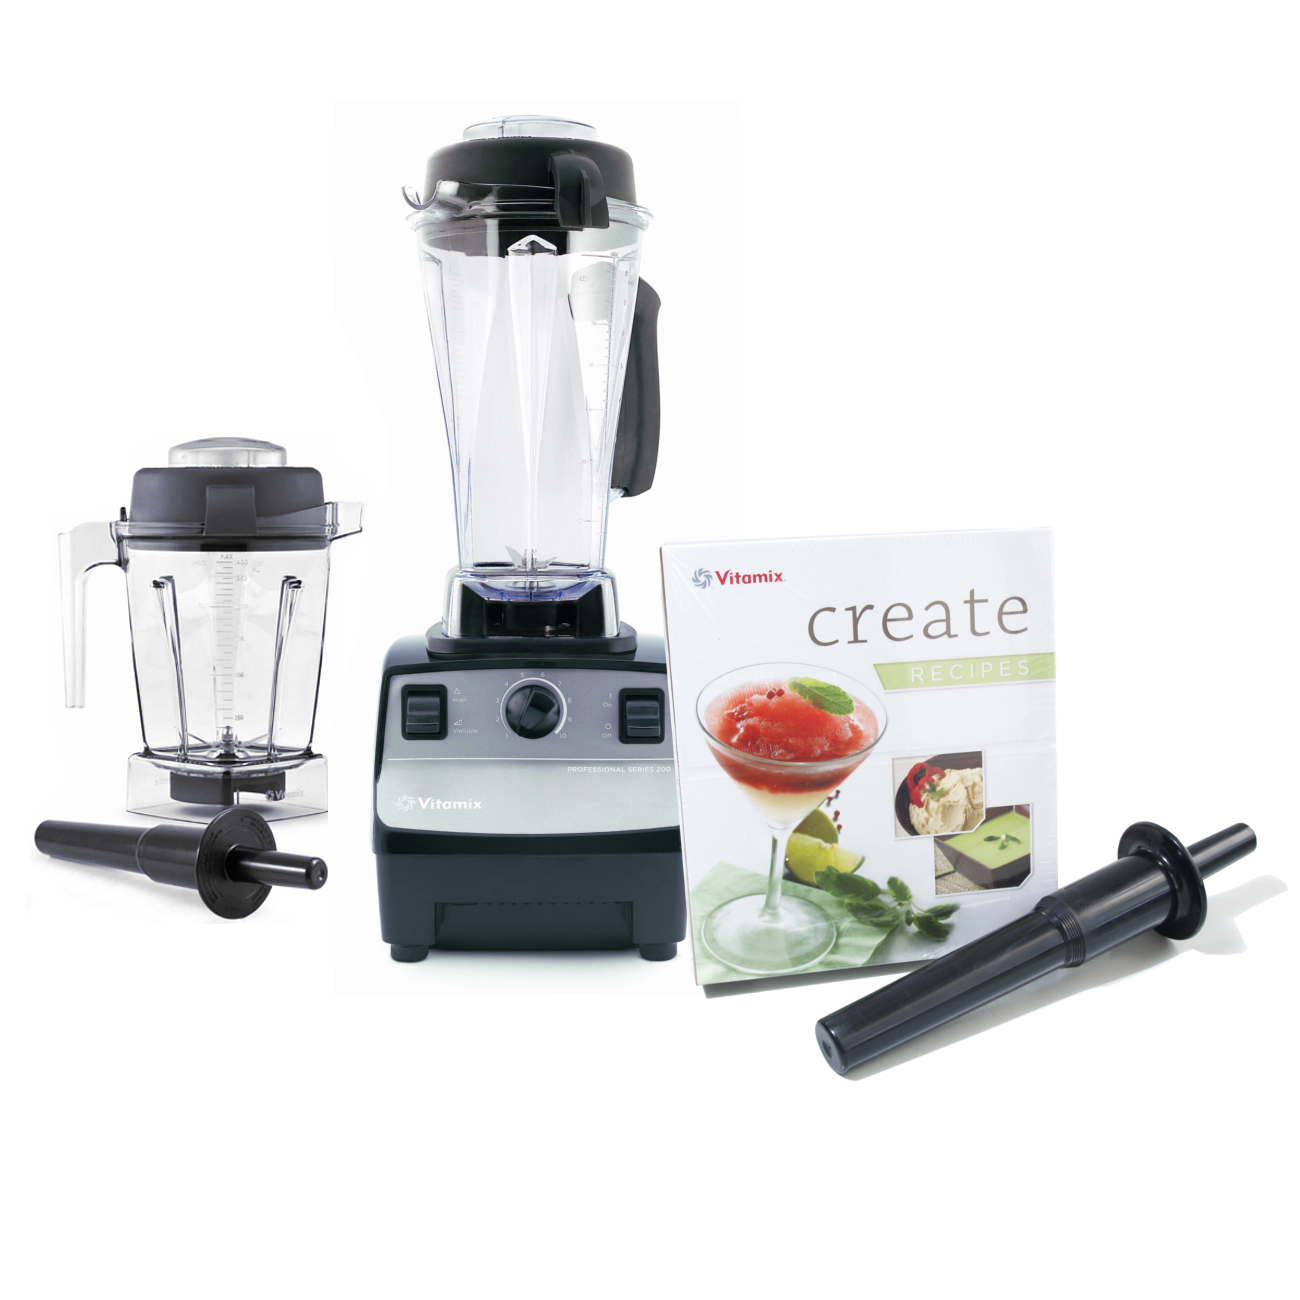 Vitamix Professional Series 200 Onyx Blender With 64 Ounce Wet Container and 48 Ounce Wet Container